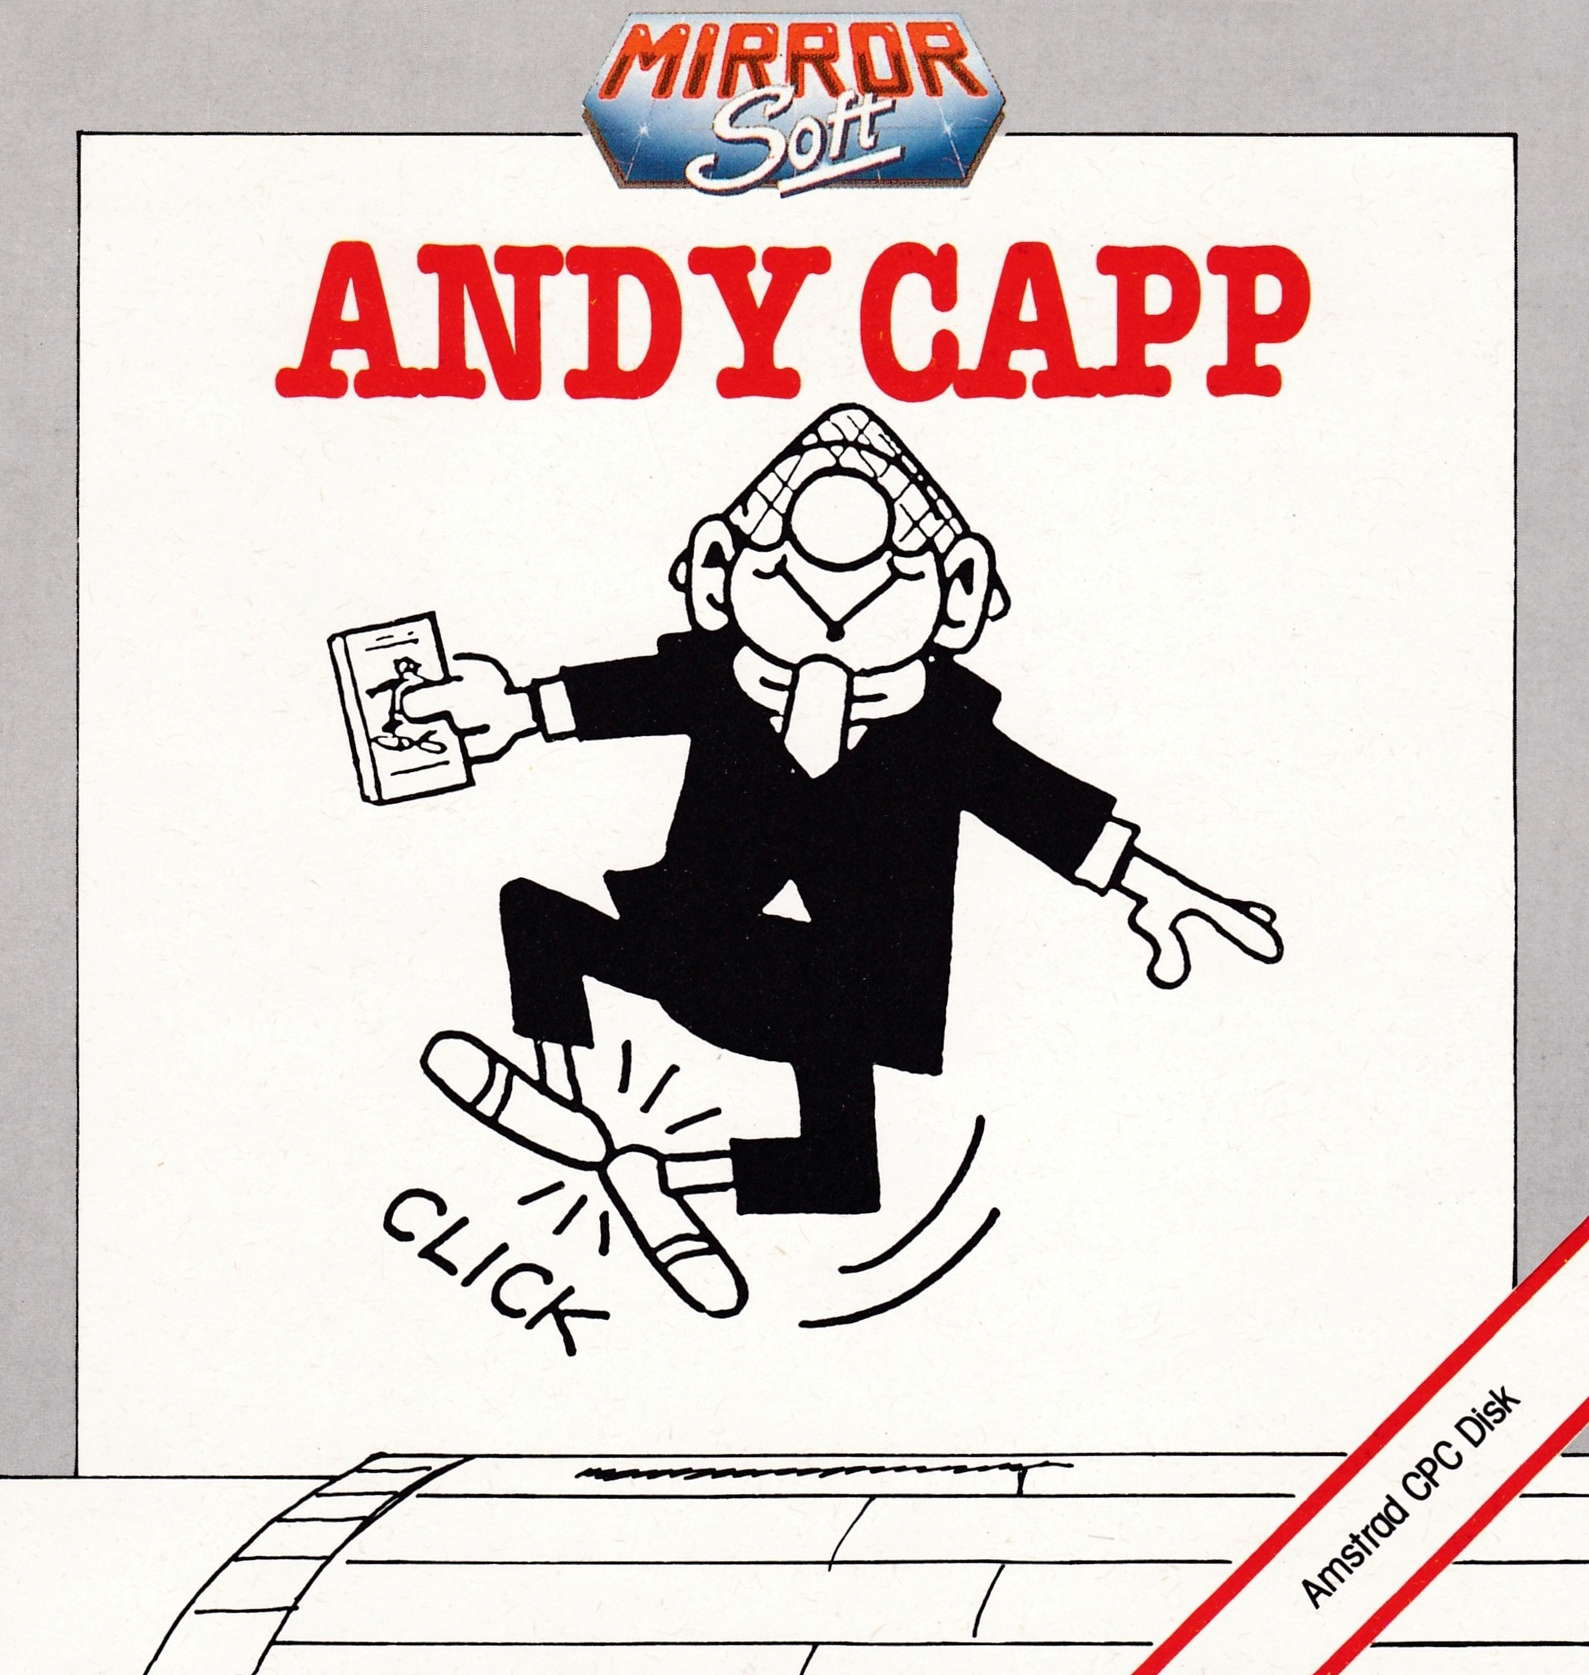 cover of the Amstrad CPC game Andy Capp  by GameBase CPC